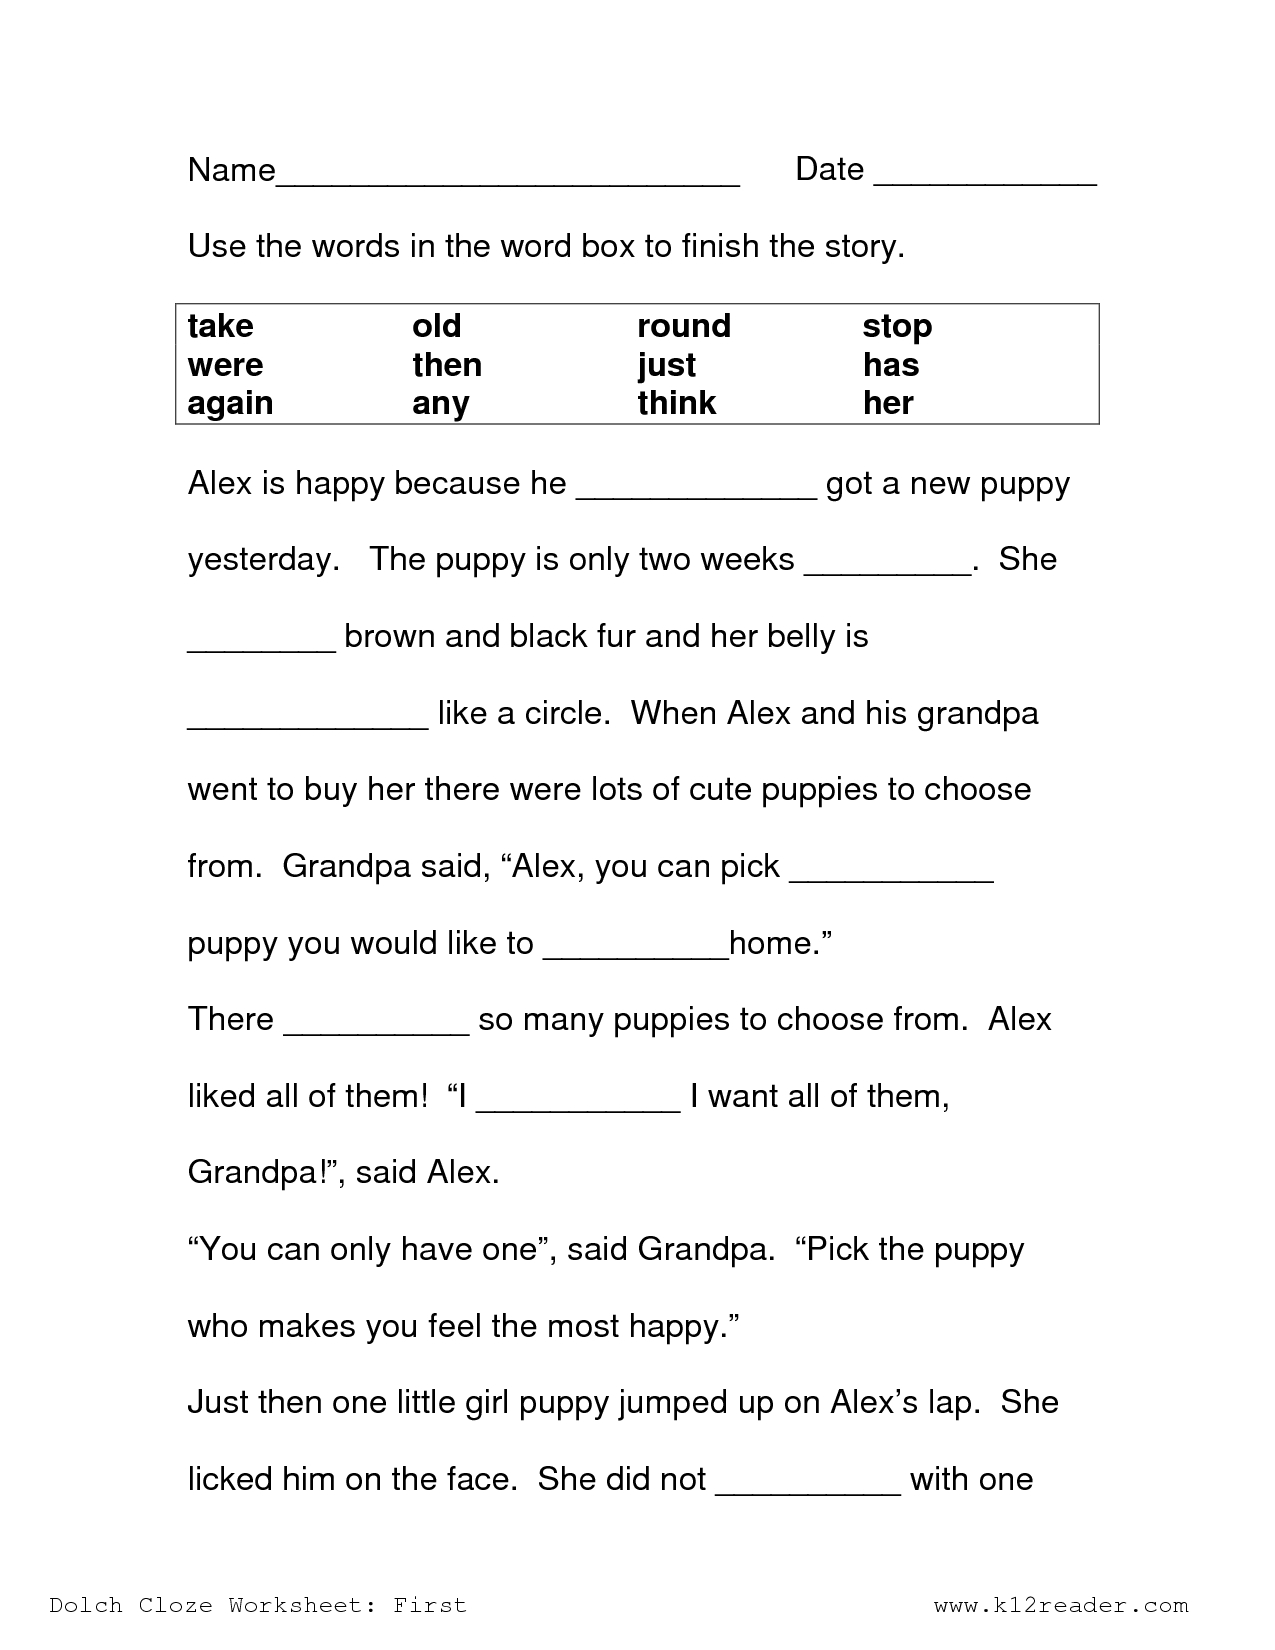 18 Best Images Of Cloze Worksheets First